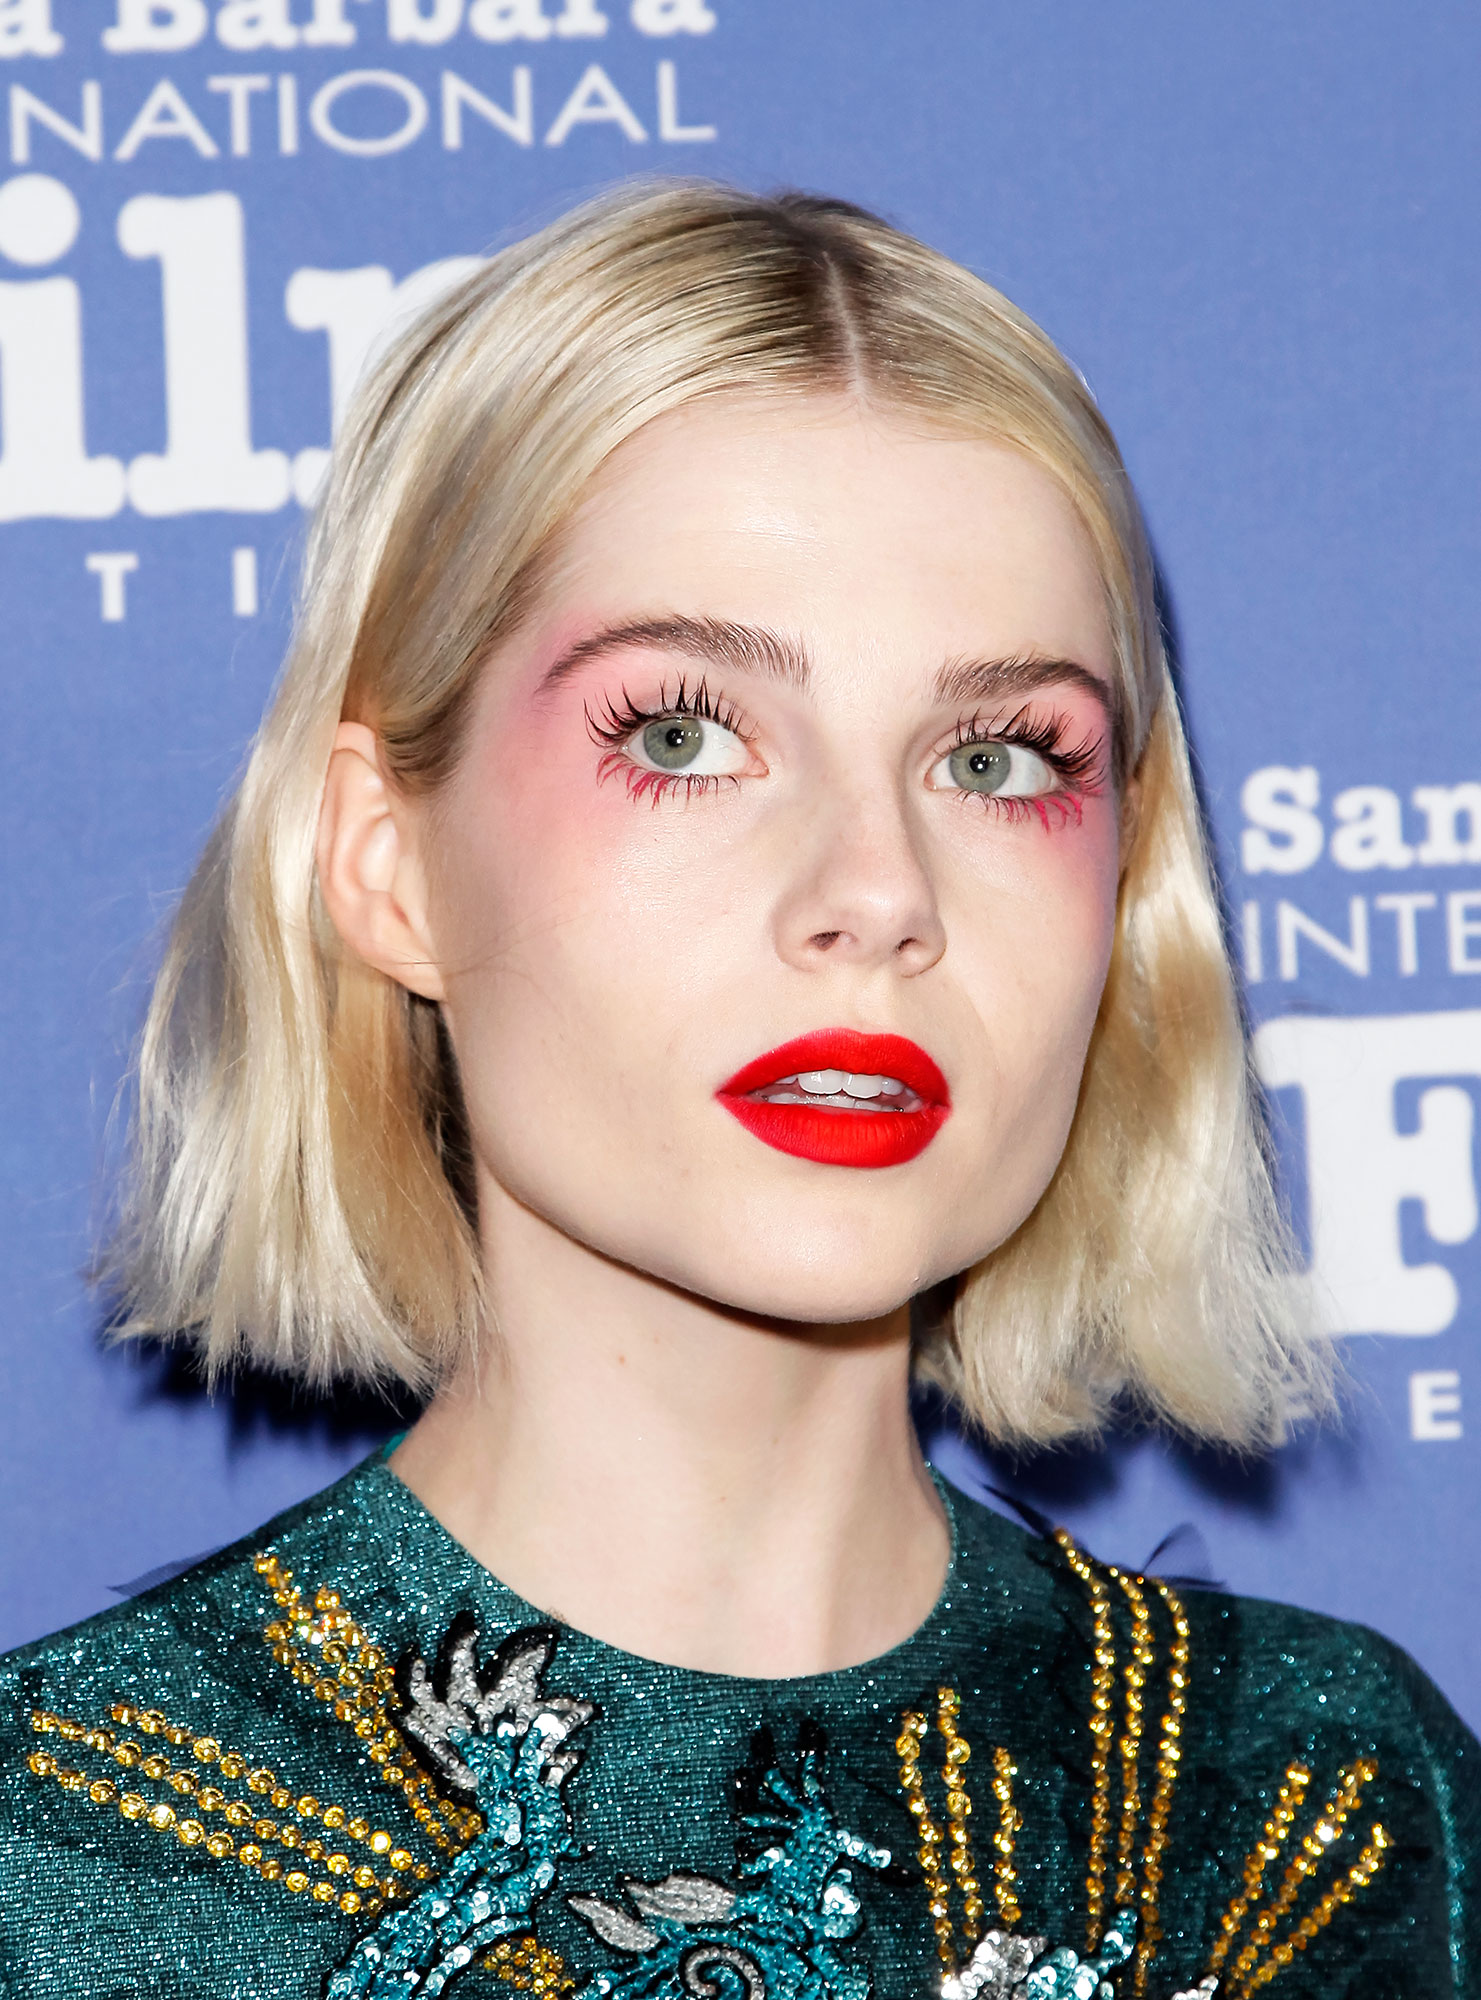 """Lucy Boynton - For a high-fashion take on Valentine's Day's classic pink and red color combo, look no further that the """"medieval geisha doll"""" look celeb makeup artist Jo Baker created for the Bohemian Rhapsody actress at the Santa Barbara International Film Festival. In addition to the """"#pinkjelly dreamy flush"""" and """"3D Matte #redlip for #colorcontrast drama,"""" Baker applied the Dior Pump'N'Volume Mascara in Pink Pump on the bottom lashes an eye-opening effect."""